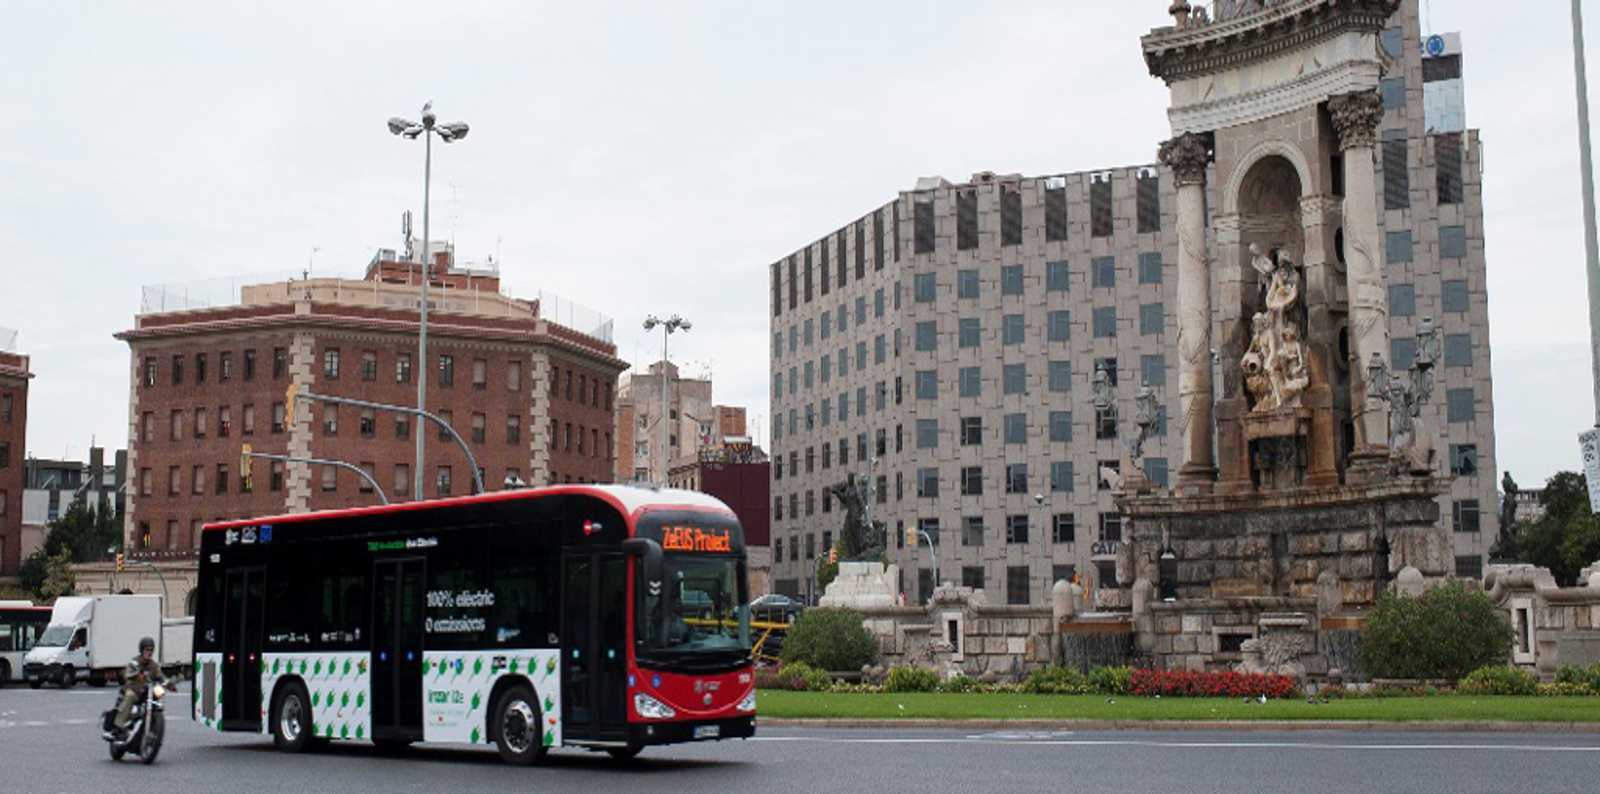 Roses disposarà de transport públic urbà tot l'any